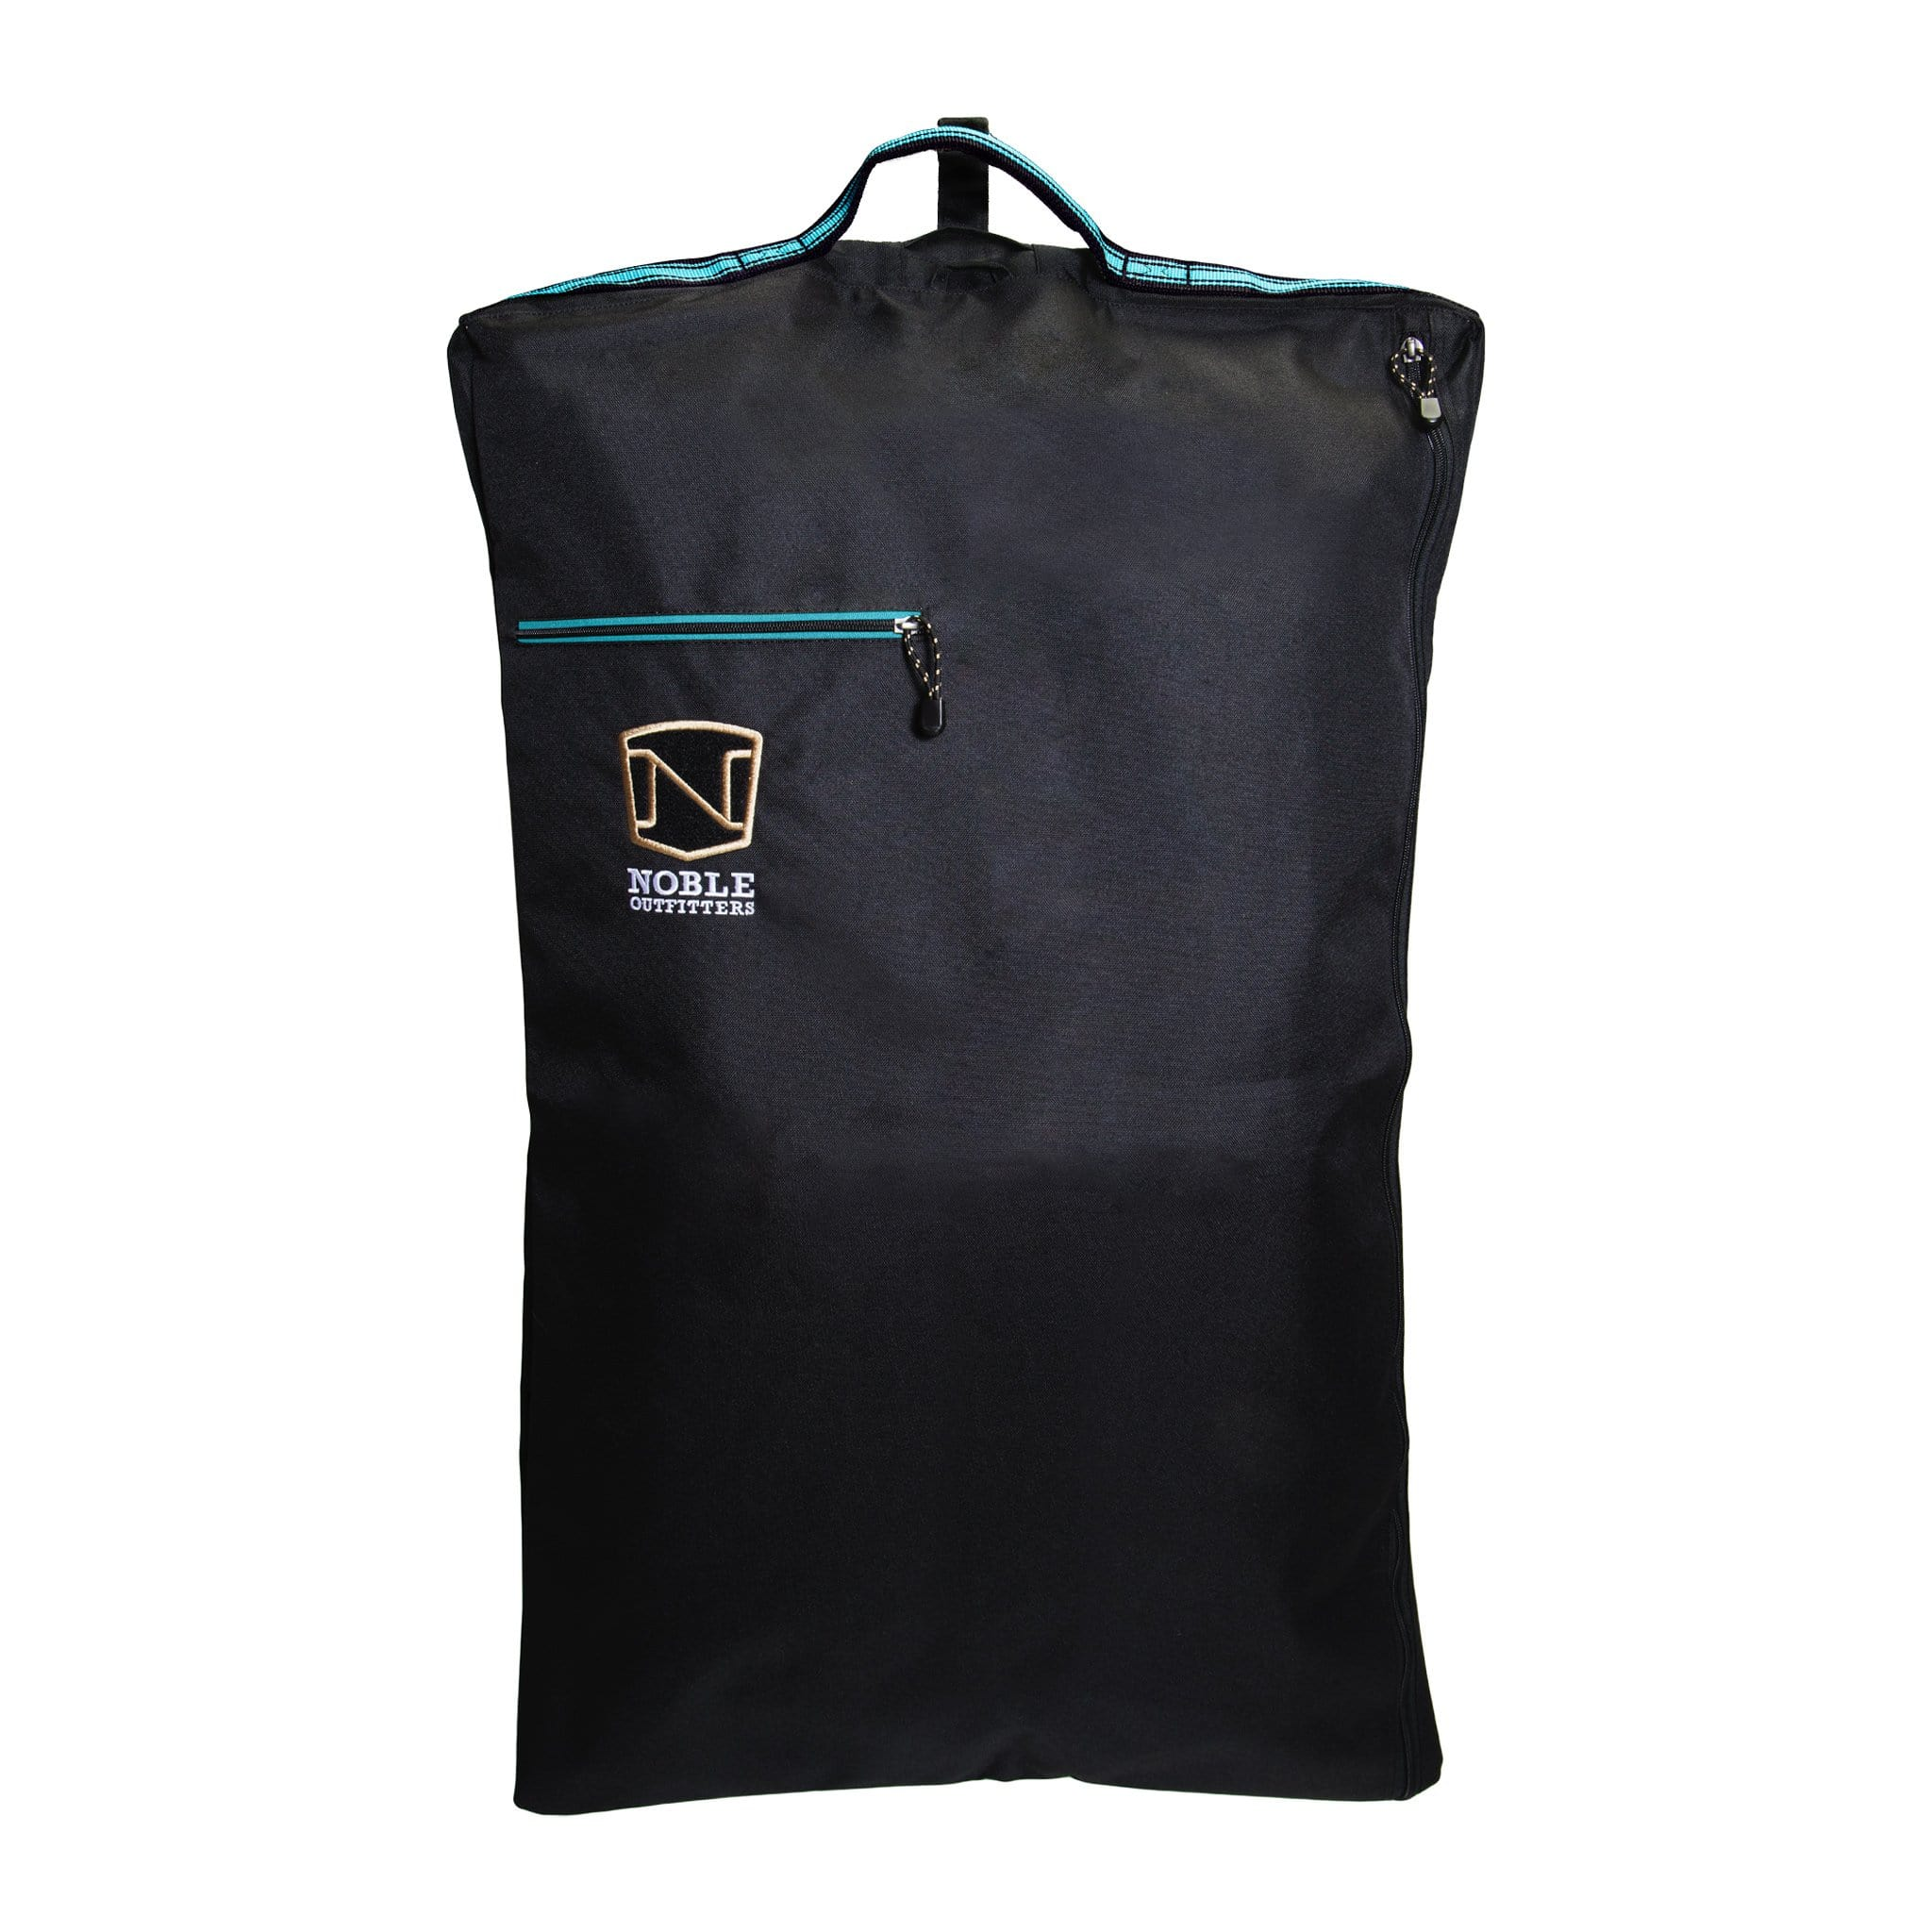 Noble Equestrian Show Ready Garment Bag 80007 Black and Deep Turquoise